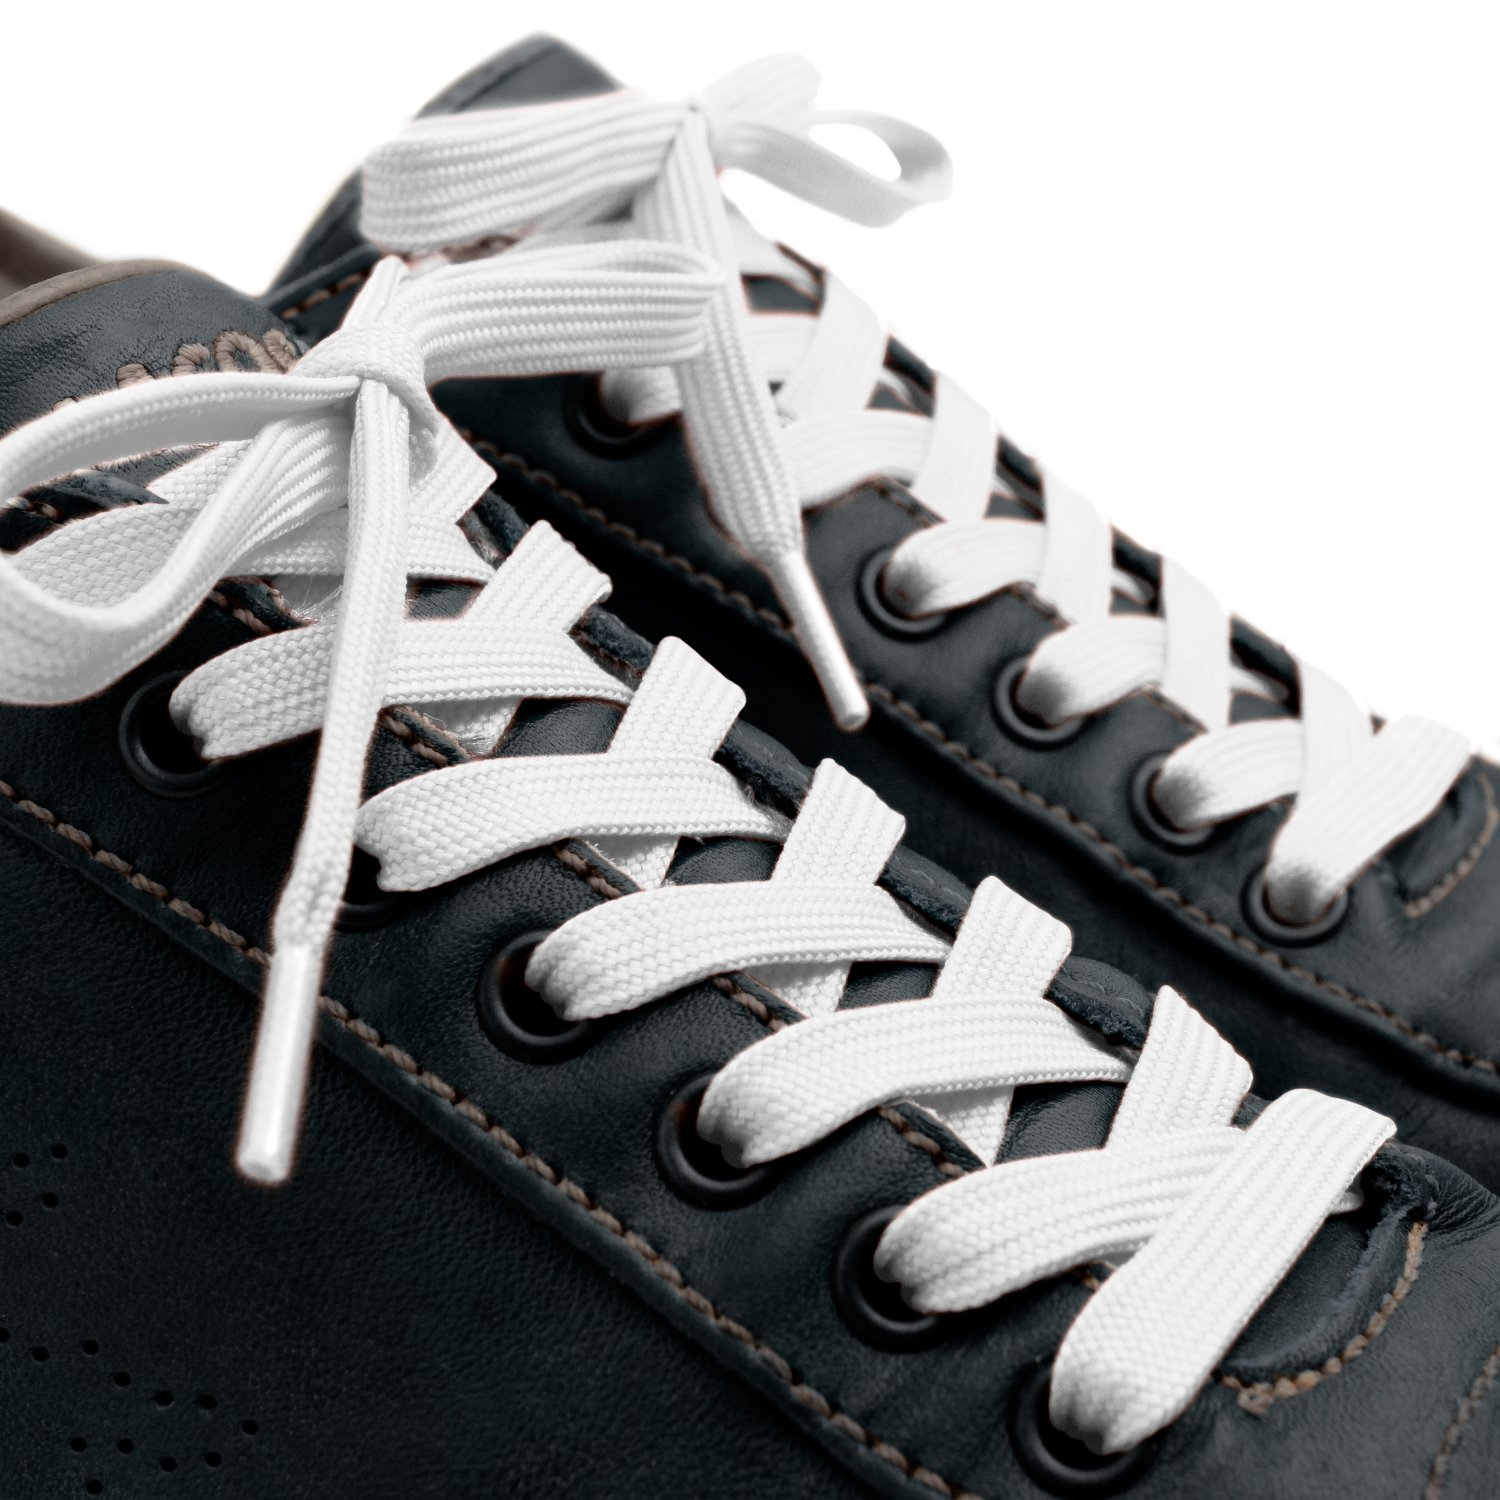 1 Pair Miscly Flat Shoelaces For All types of Shoes /& Sneakers